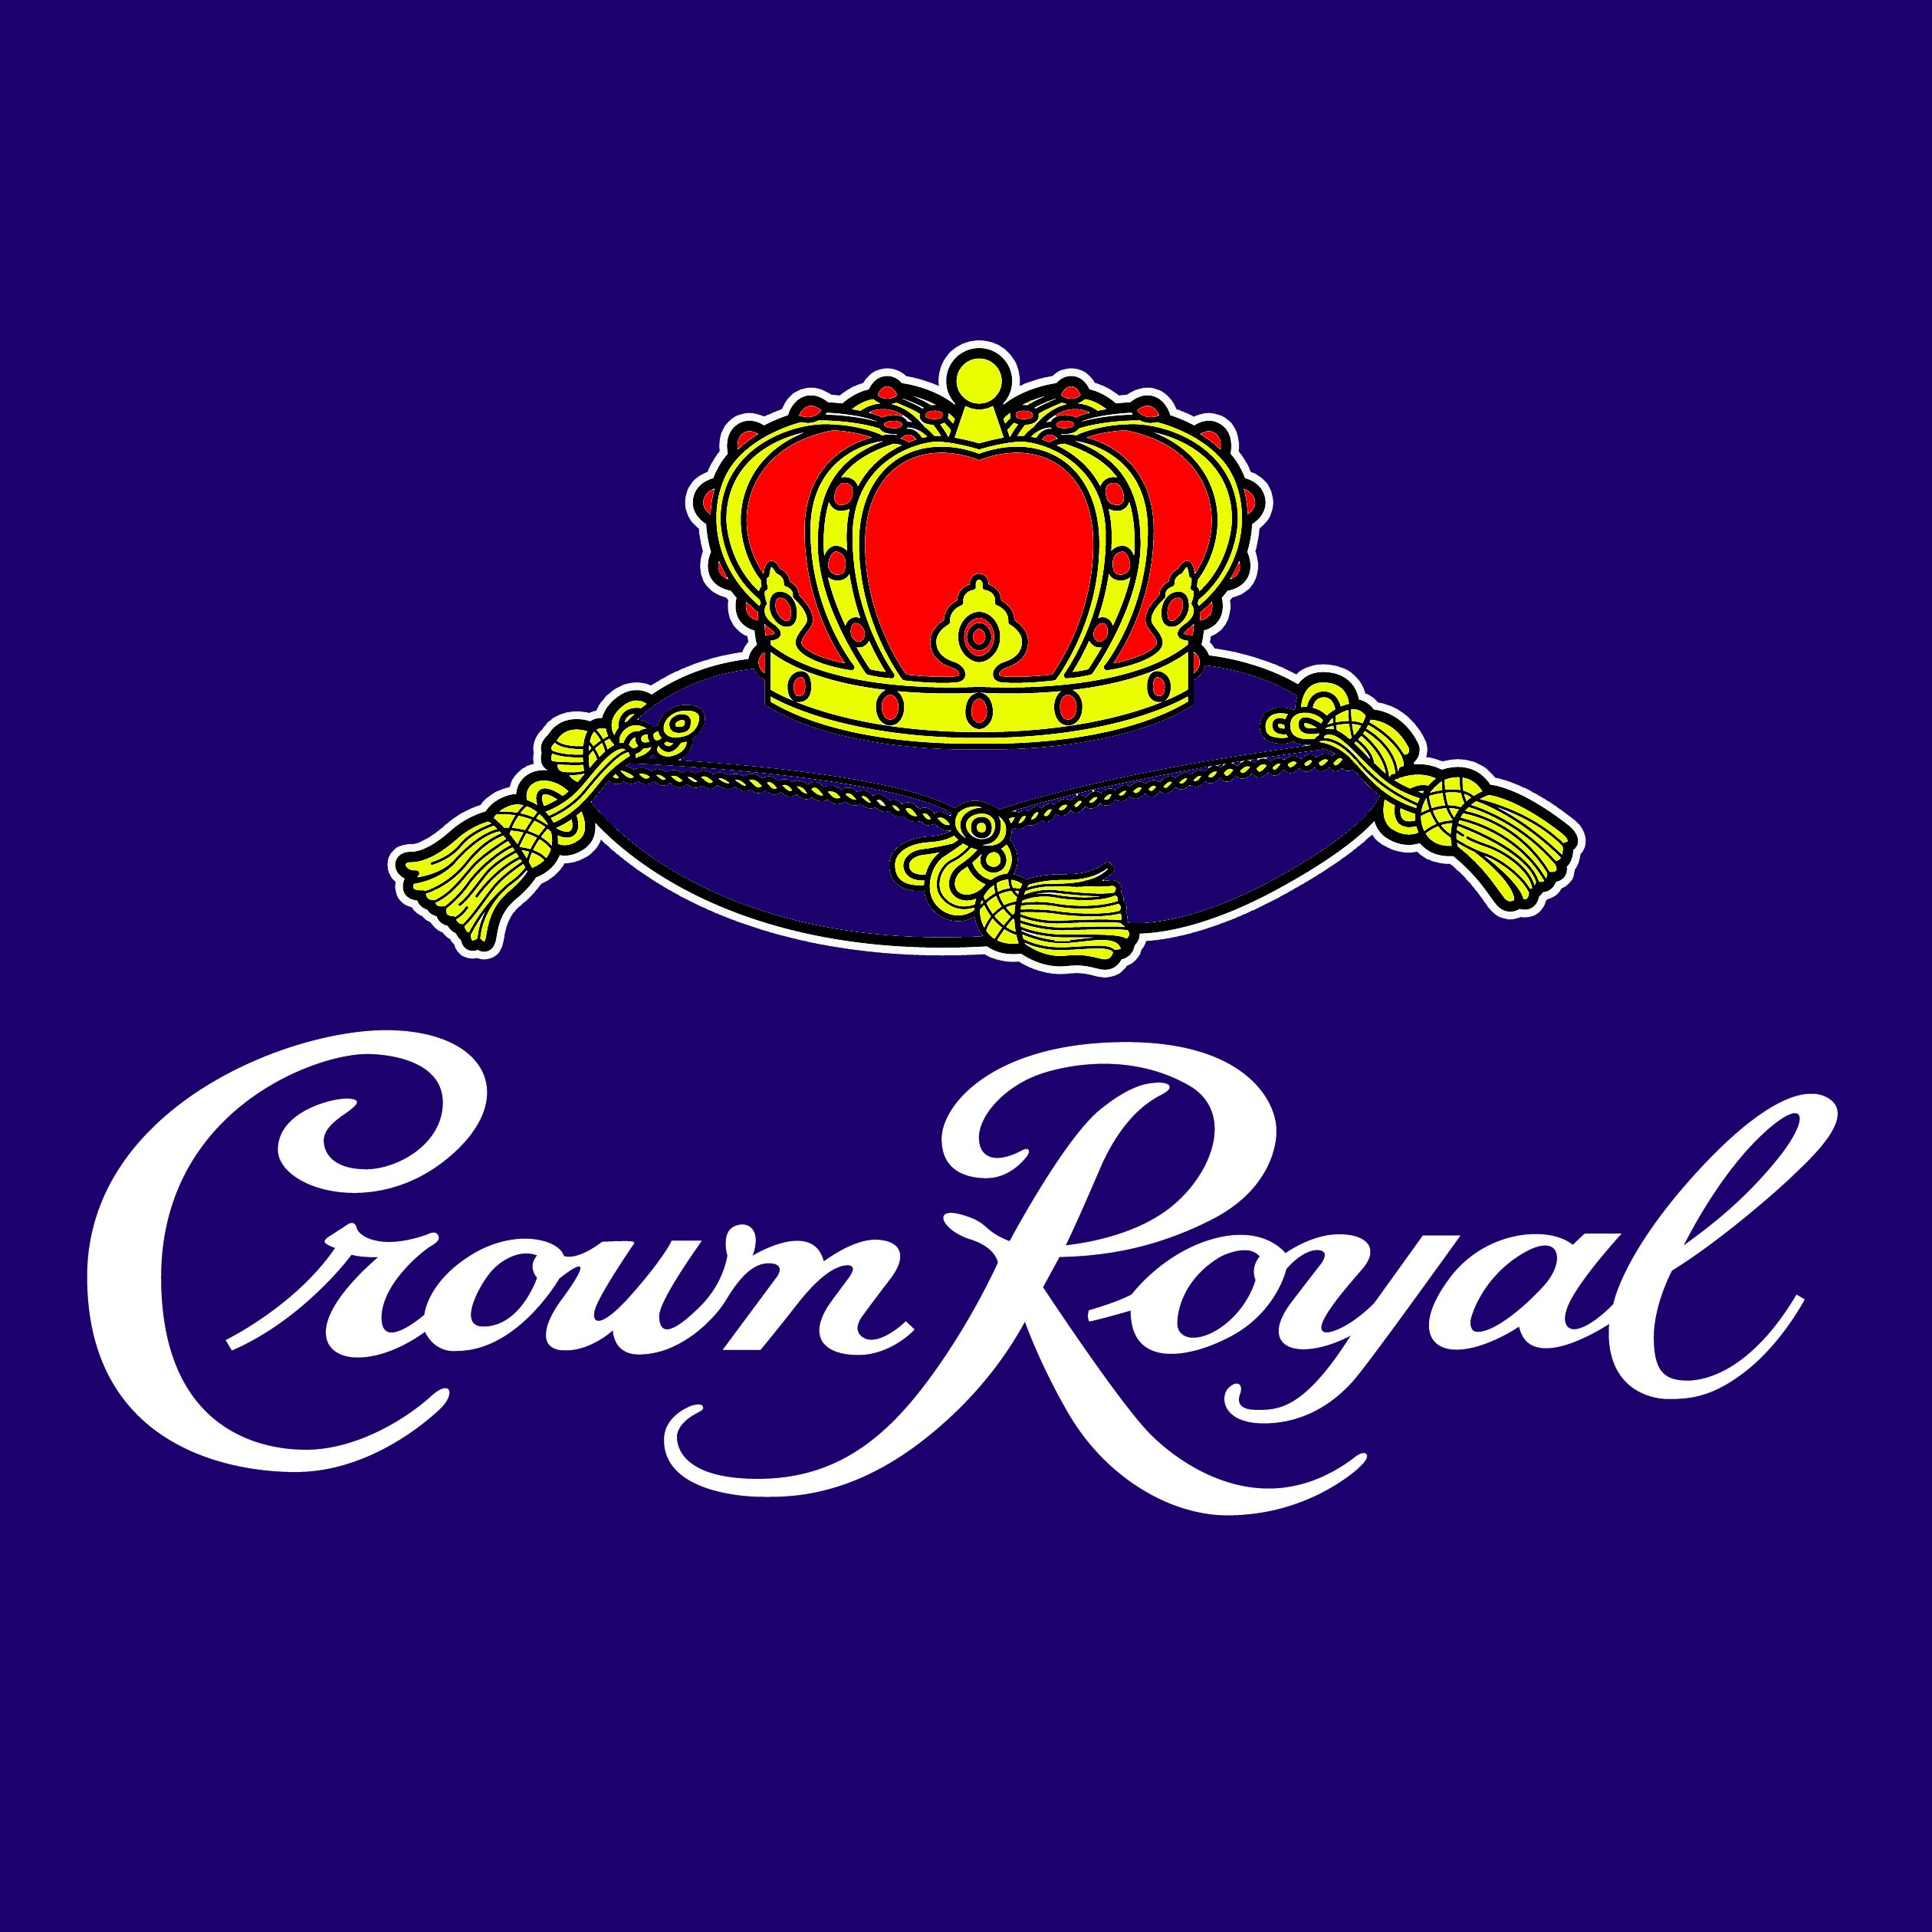 CROWN ROYAL canadian whisky alcohol wallpaper 2520x2520 503866 2520x2520